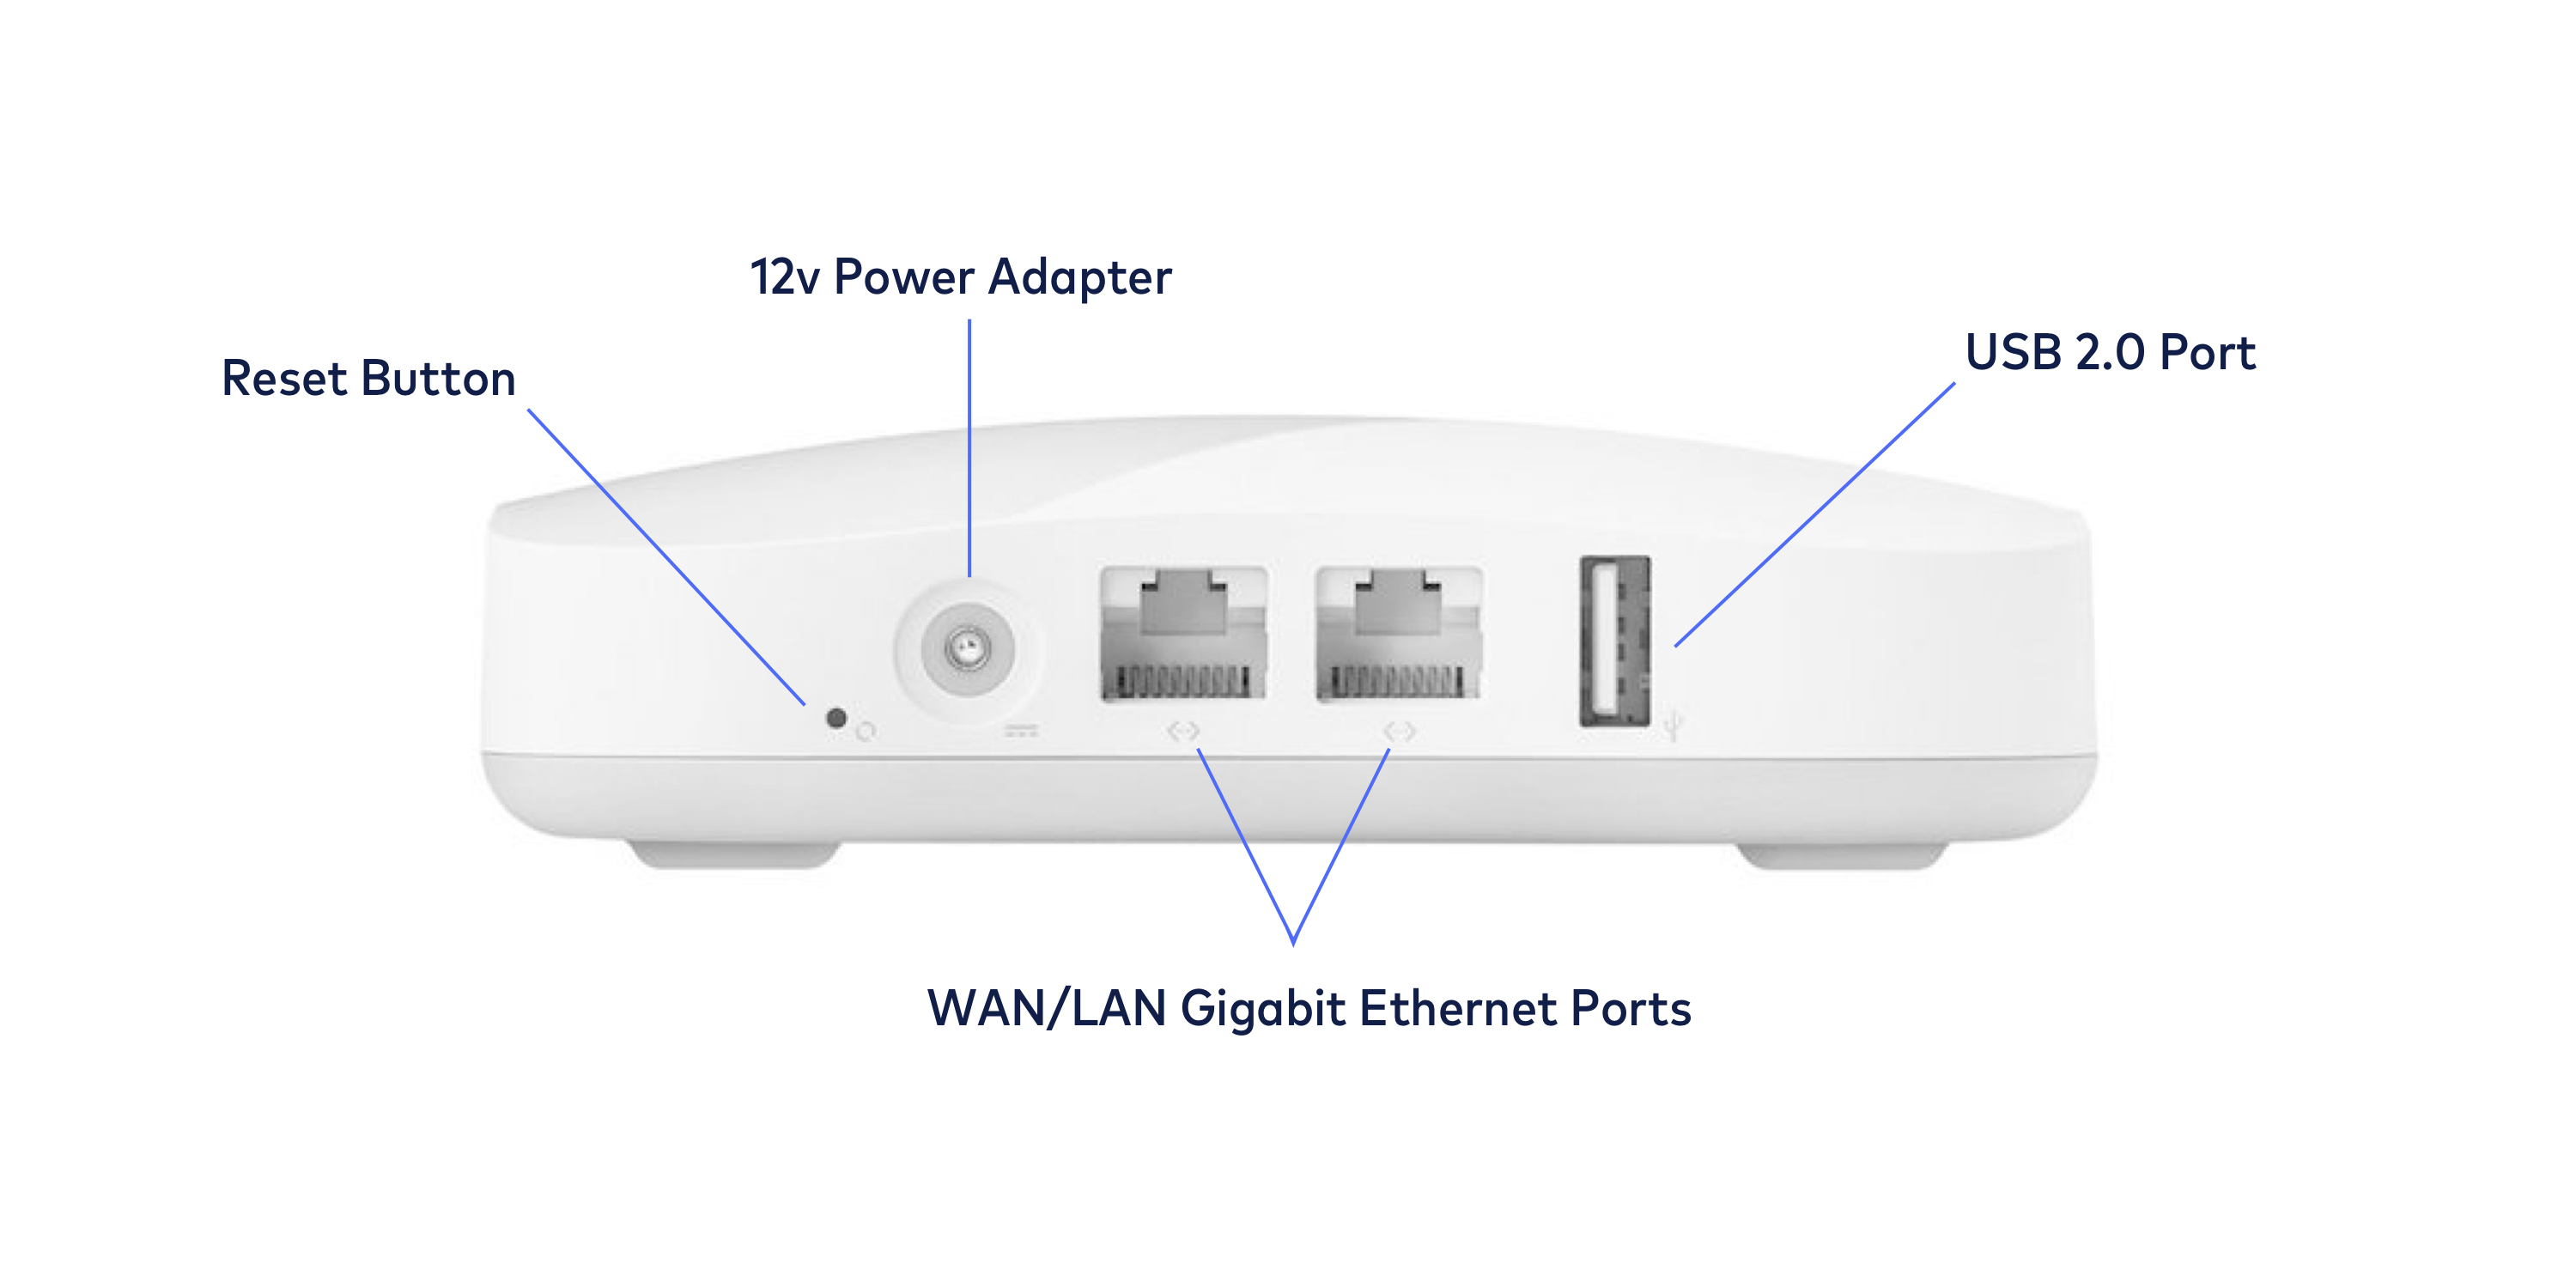 Physical Tour Of An Eero: What Are All The Ports For? – Eero Help Center - How To Hookup Ethernet To Usb Wiring Diagram